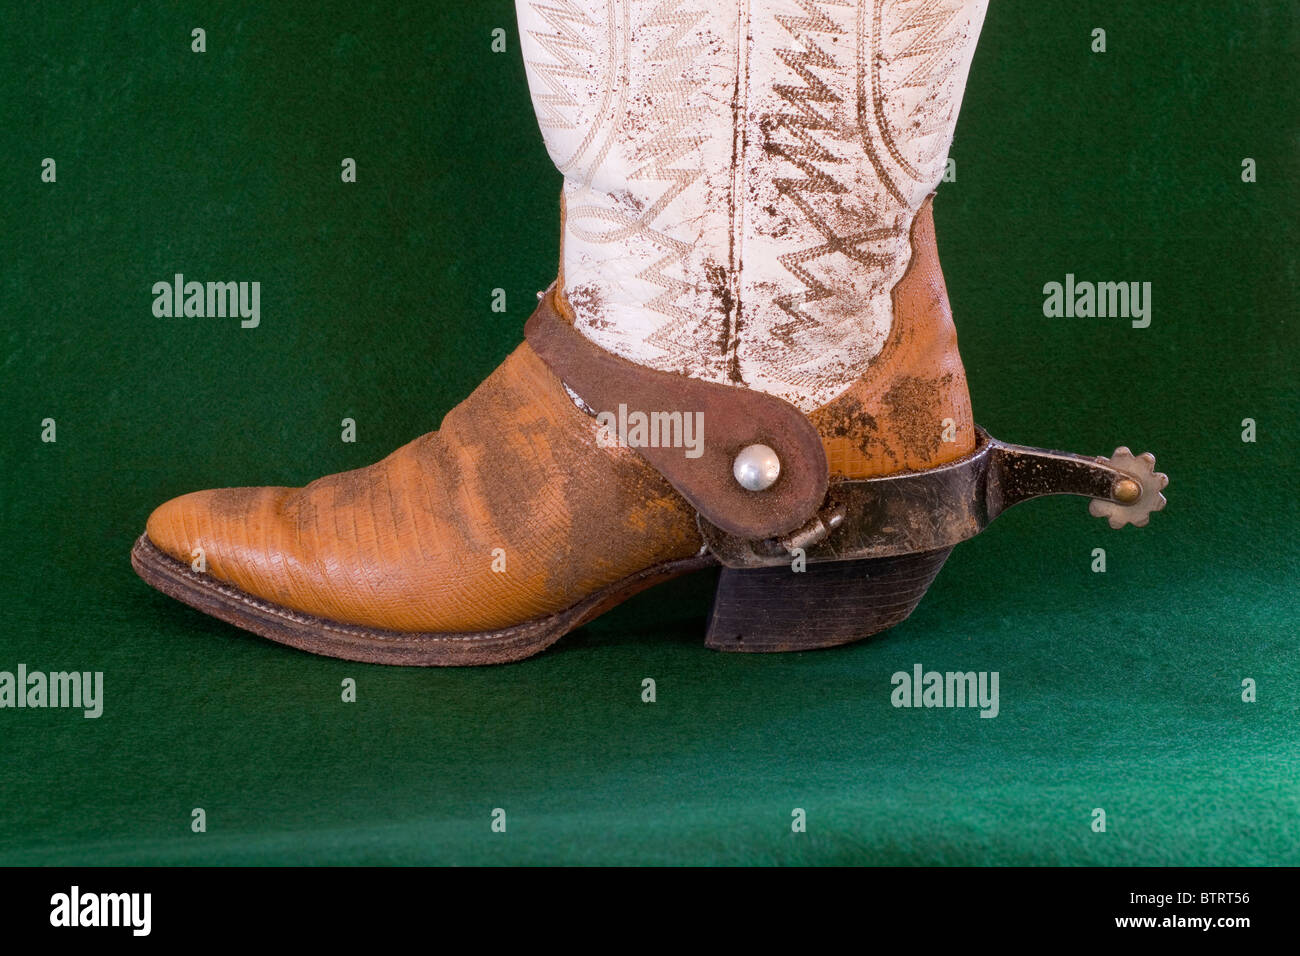 A well worn pair of cowboy boots with spurs. - Stock Image